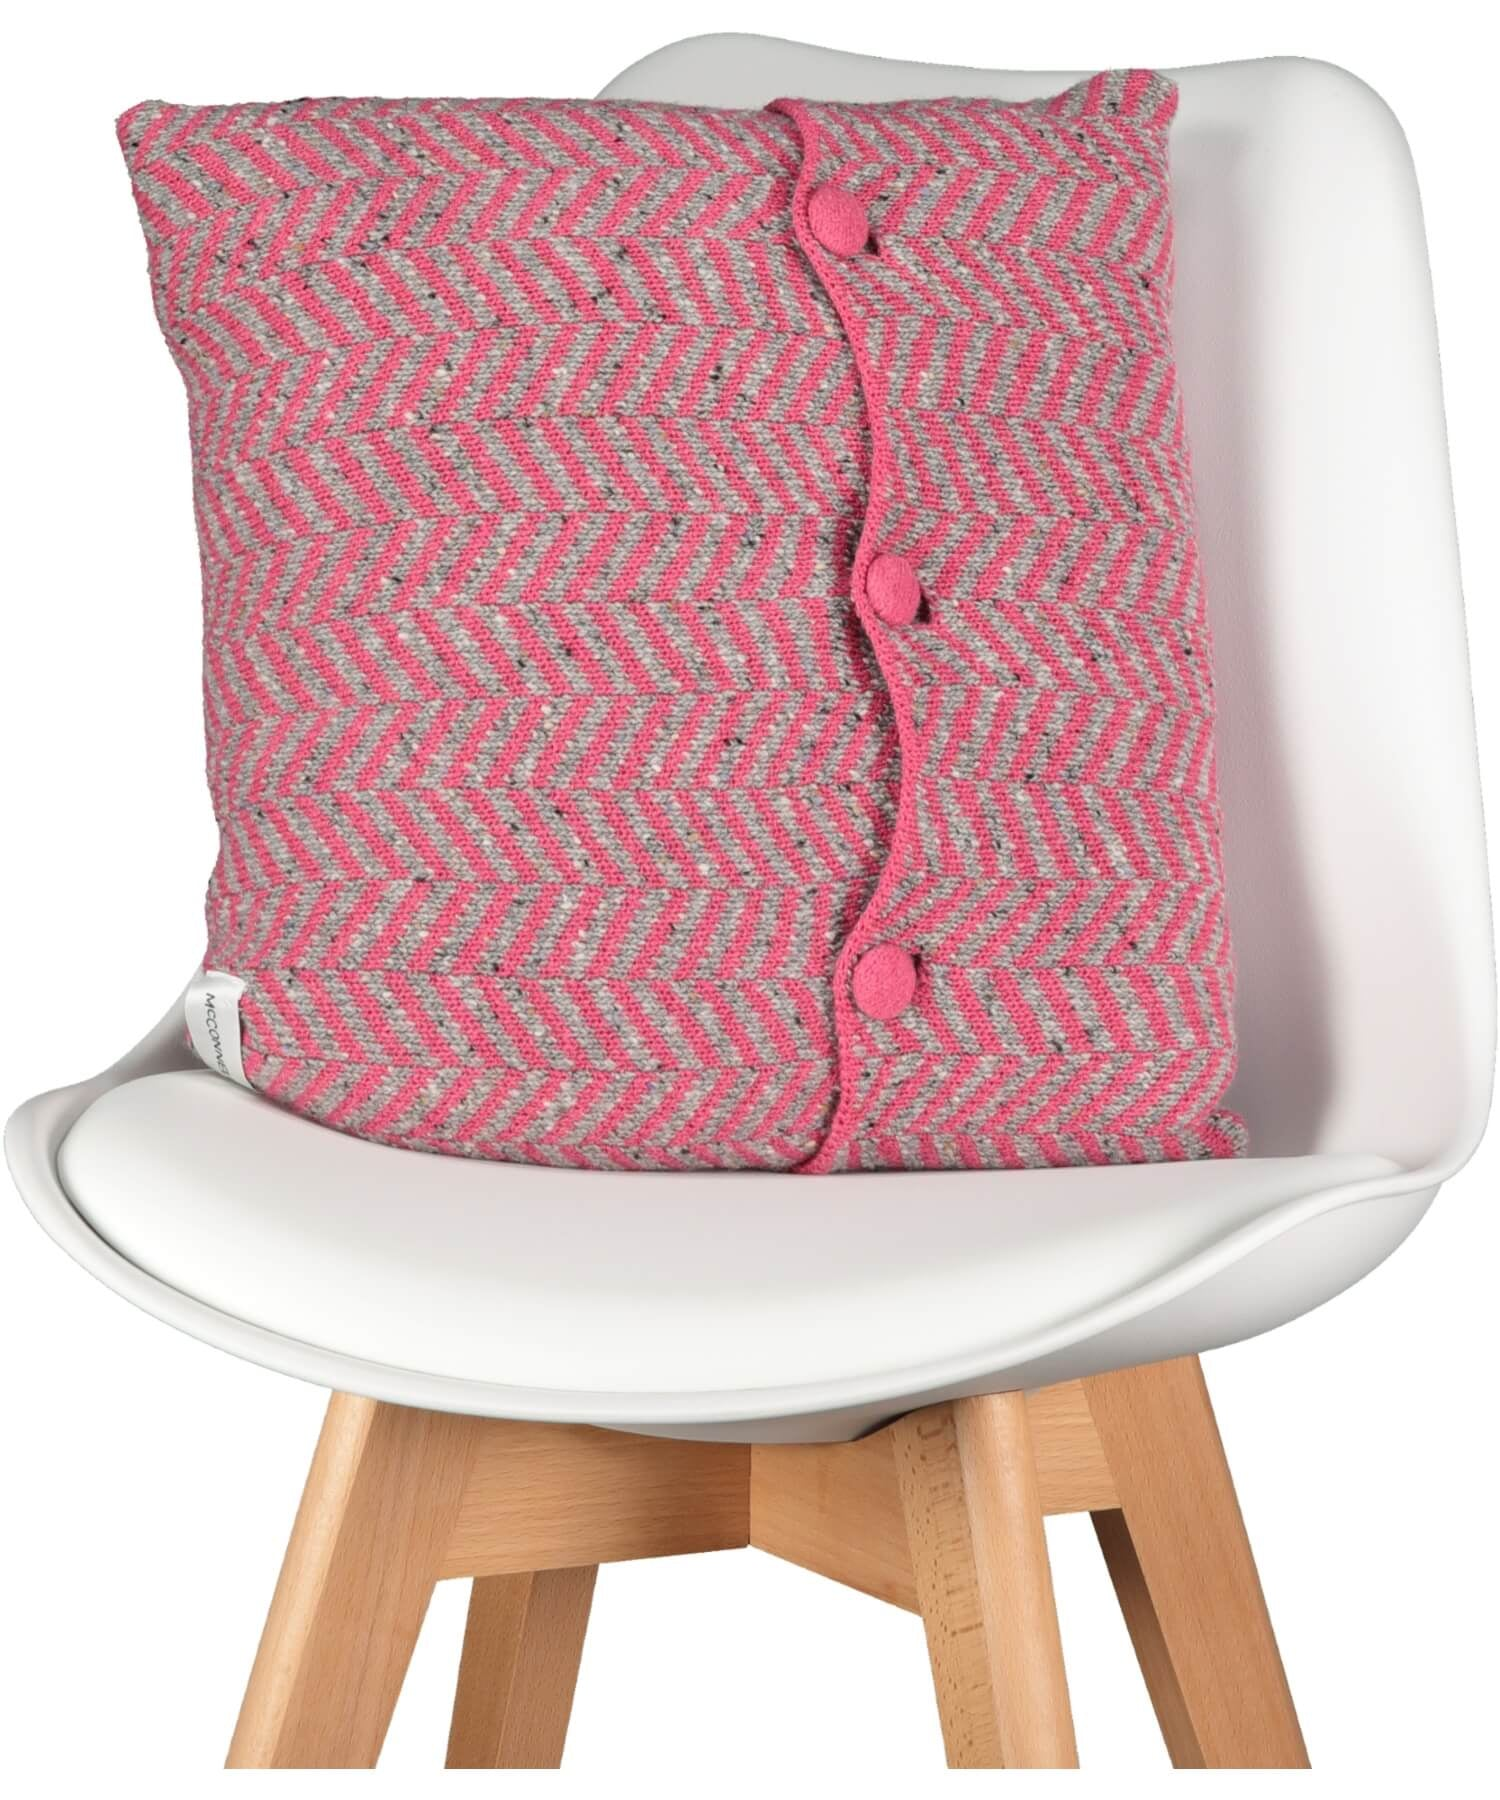 "Herringbone 18"" Cushion - Pink - [McConnell] - Throws & Cushions - Irish Gifts"